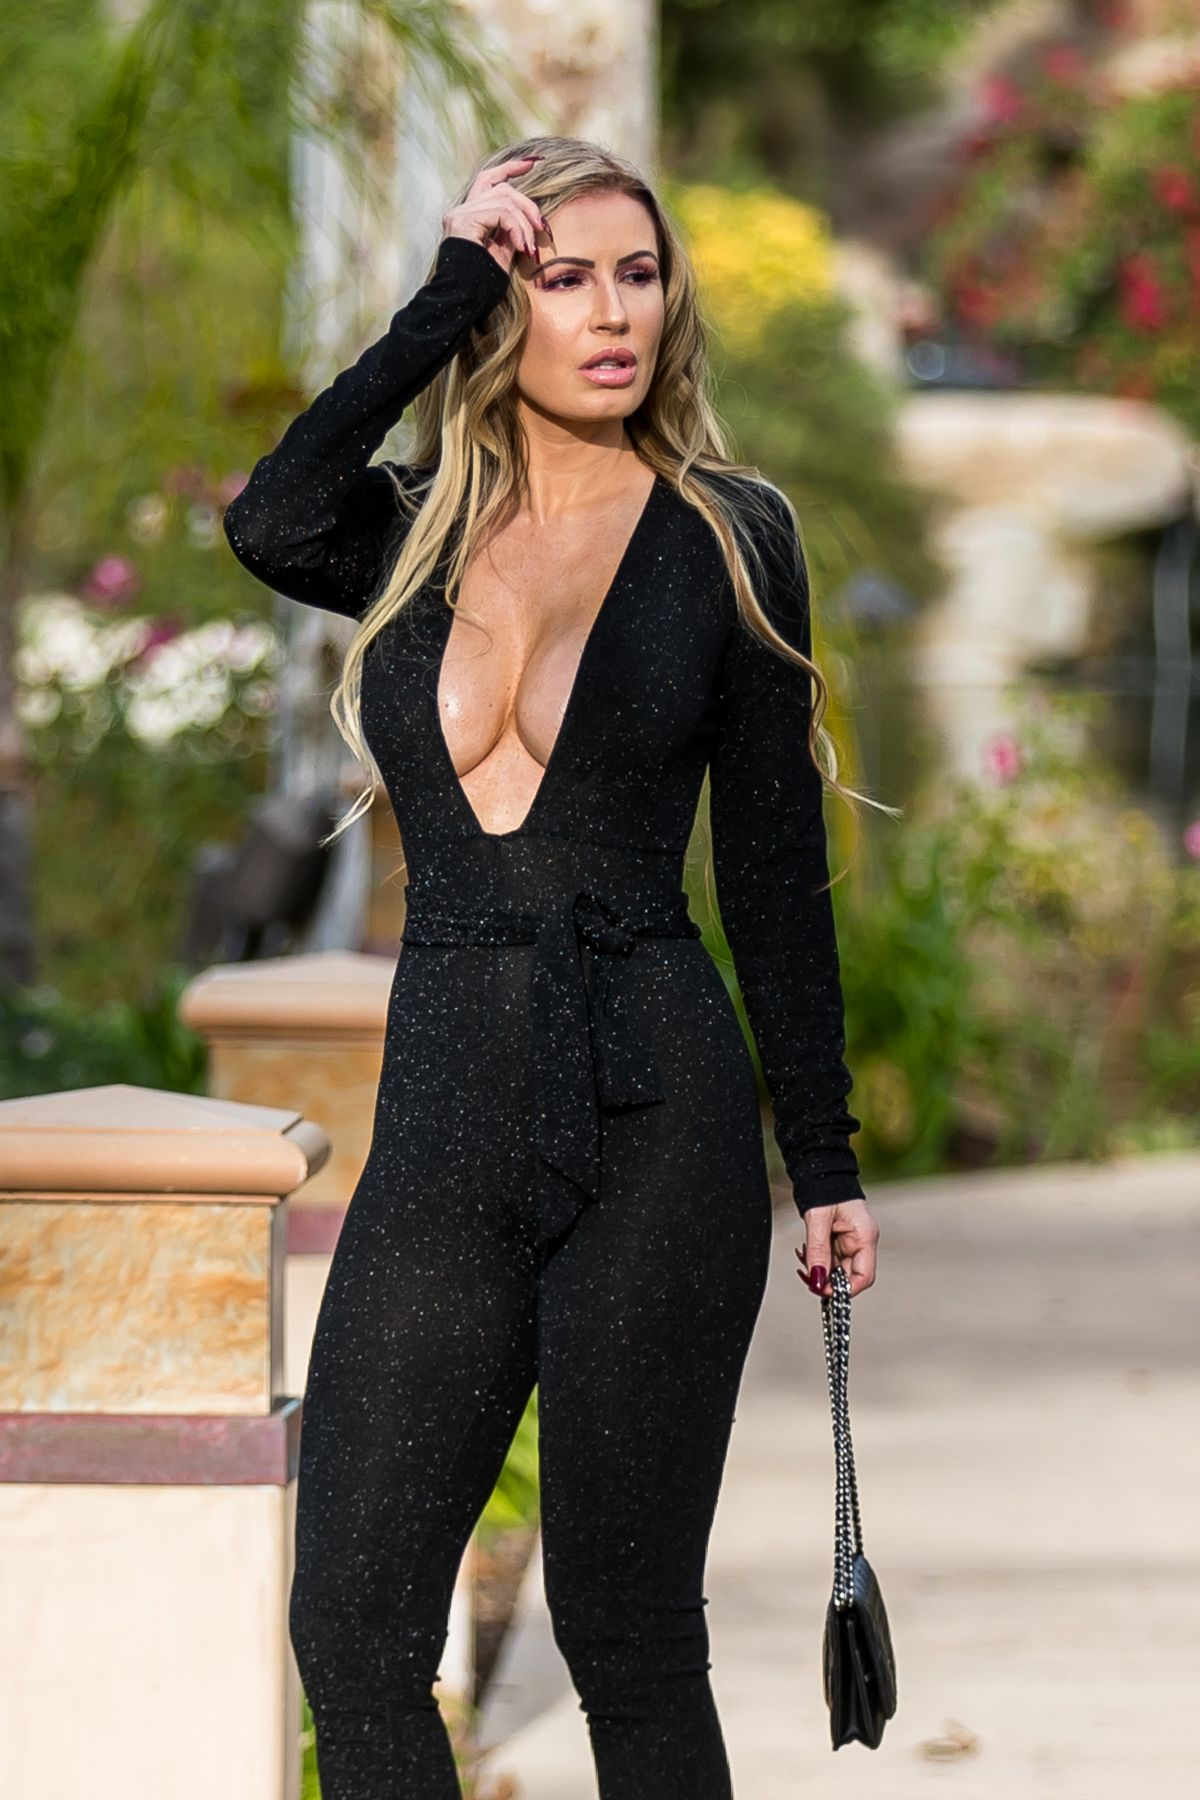 Ana Braga Seen in revealing dress in Los Angeles - Celebzz - Celebzz